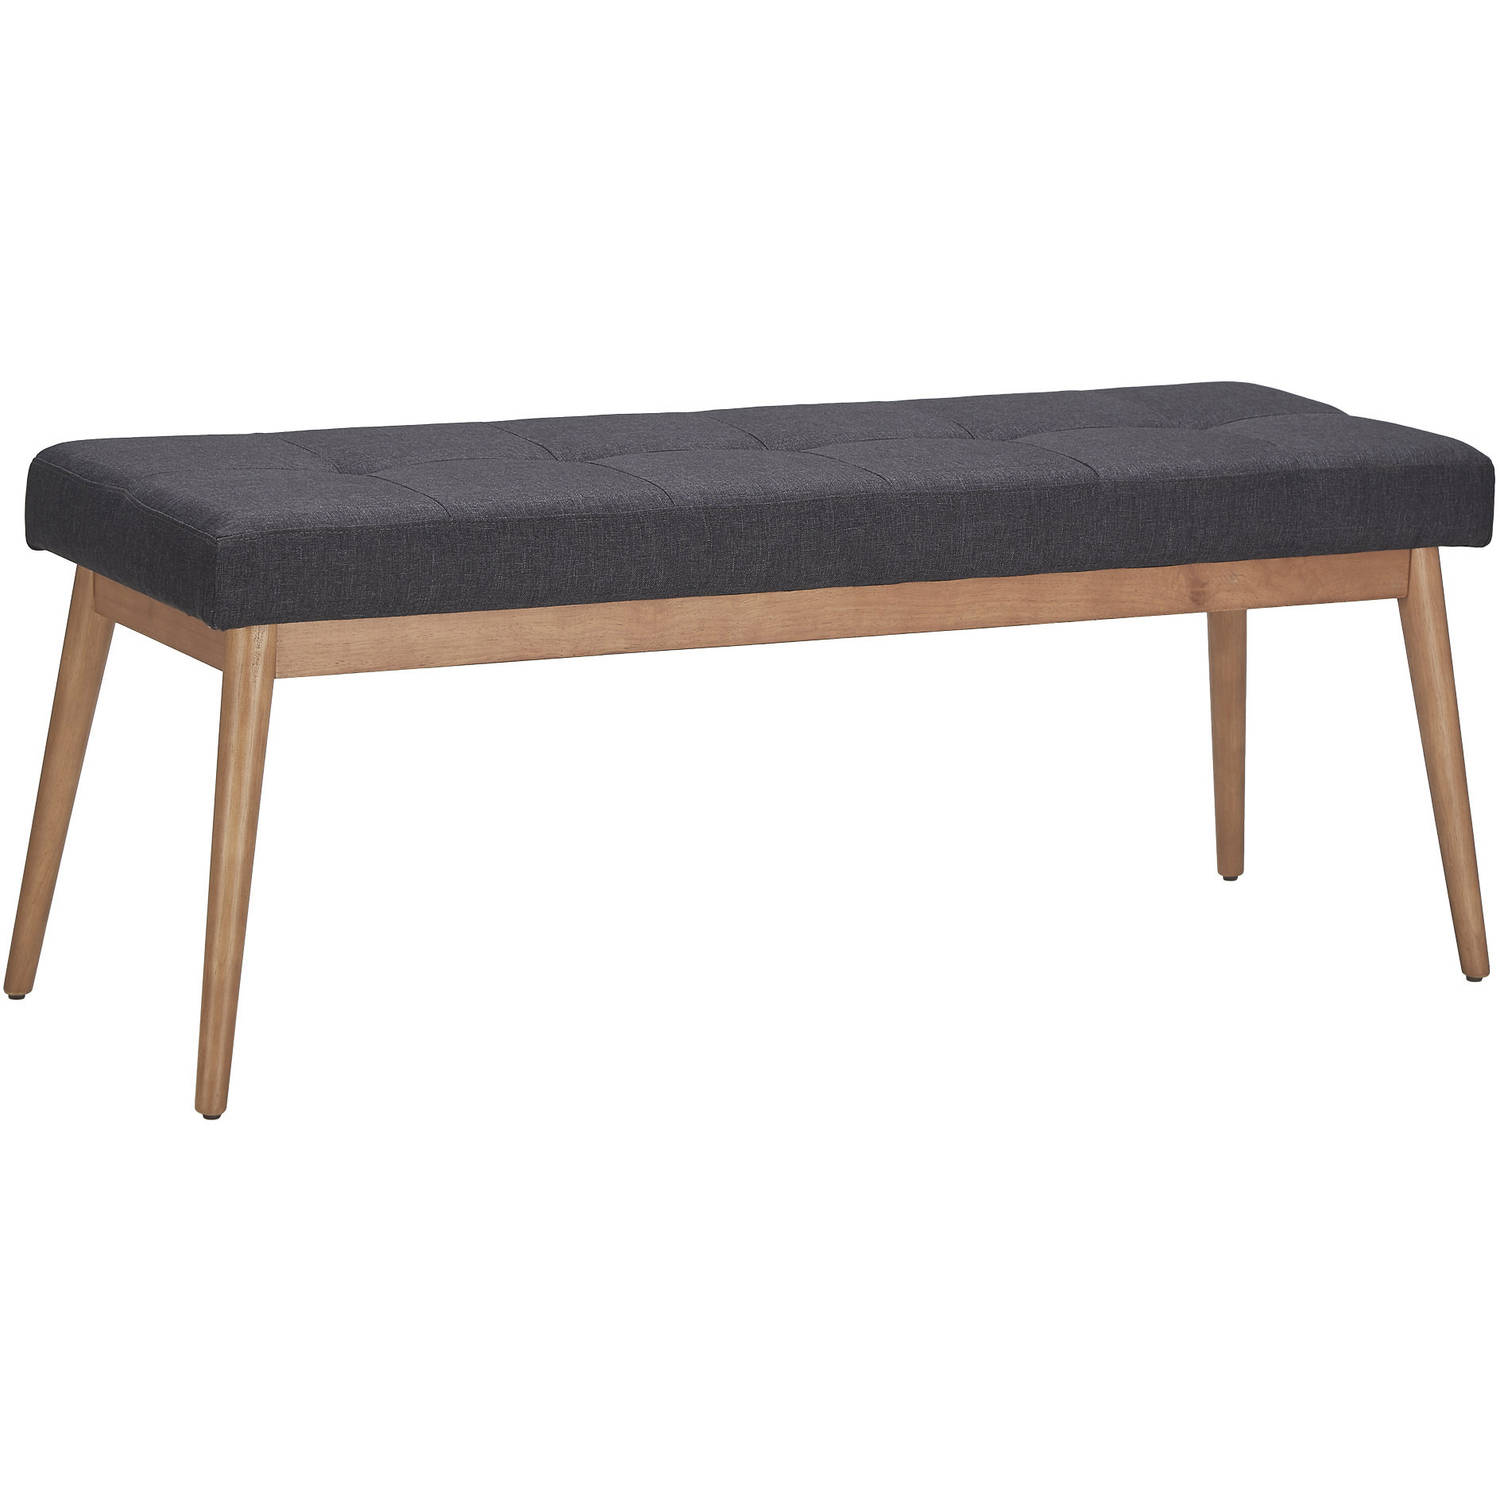 Chelsea Lane Baxter Dining Bench, Light Oak